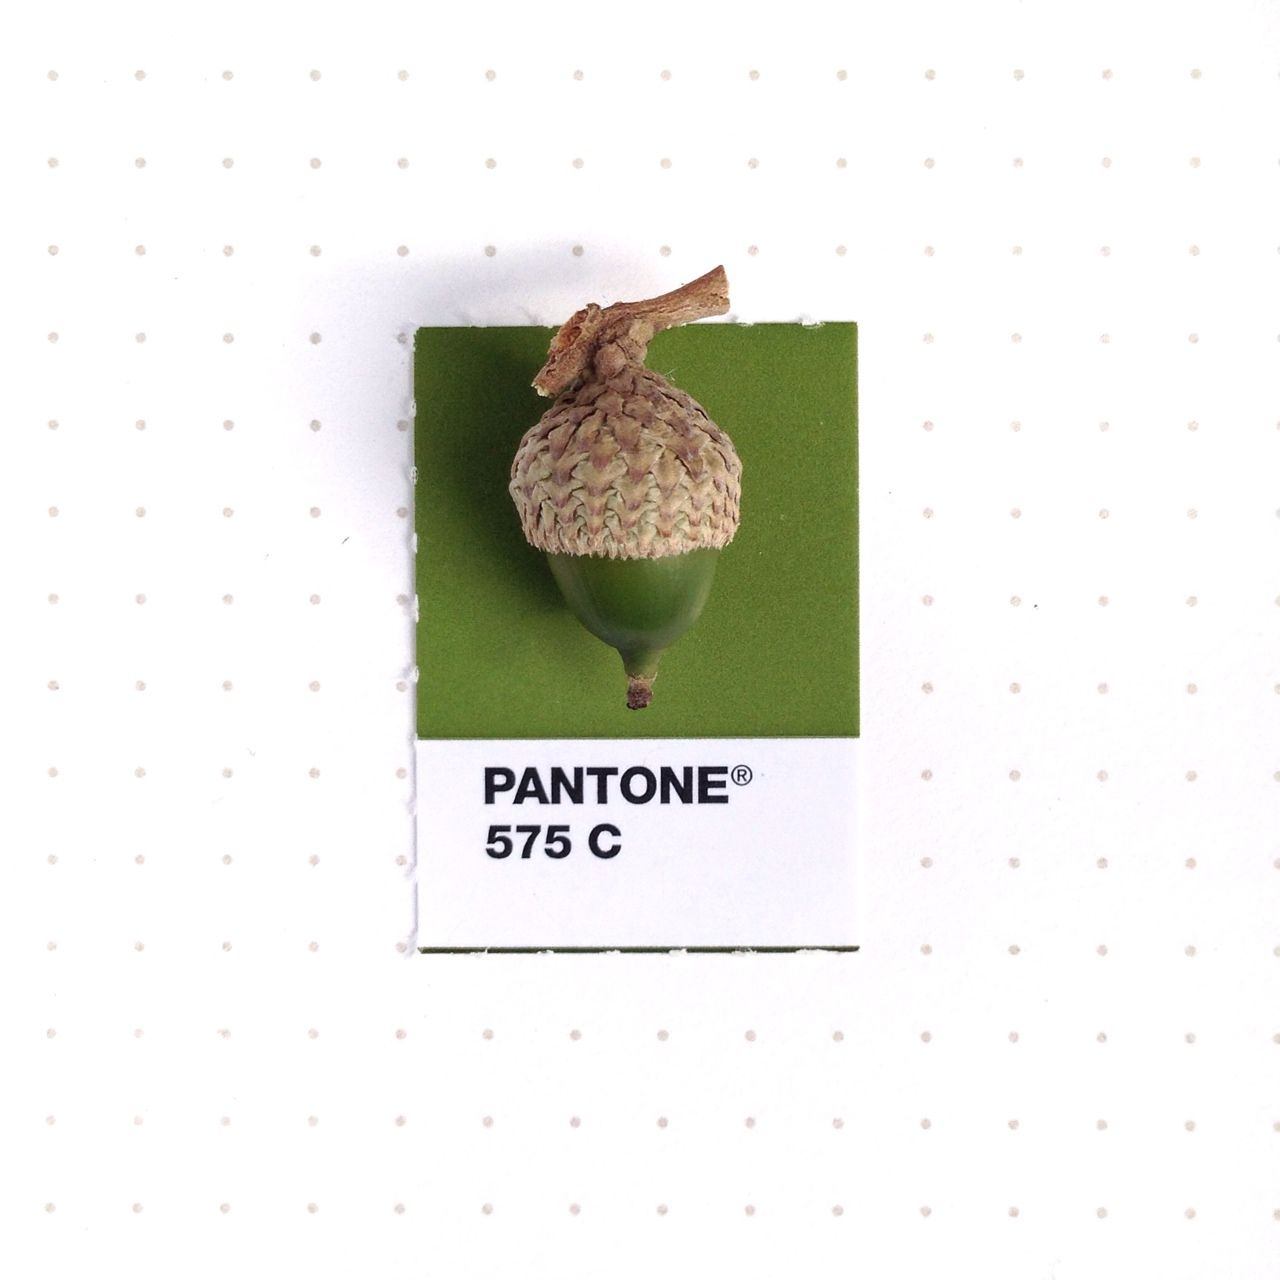 Pantone 575 color match. Baby acorn! My two oak trees are bearing ...